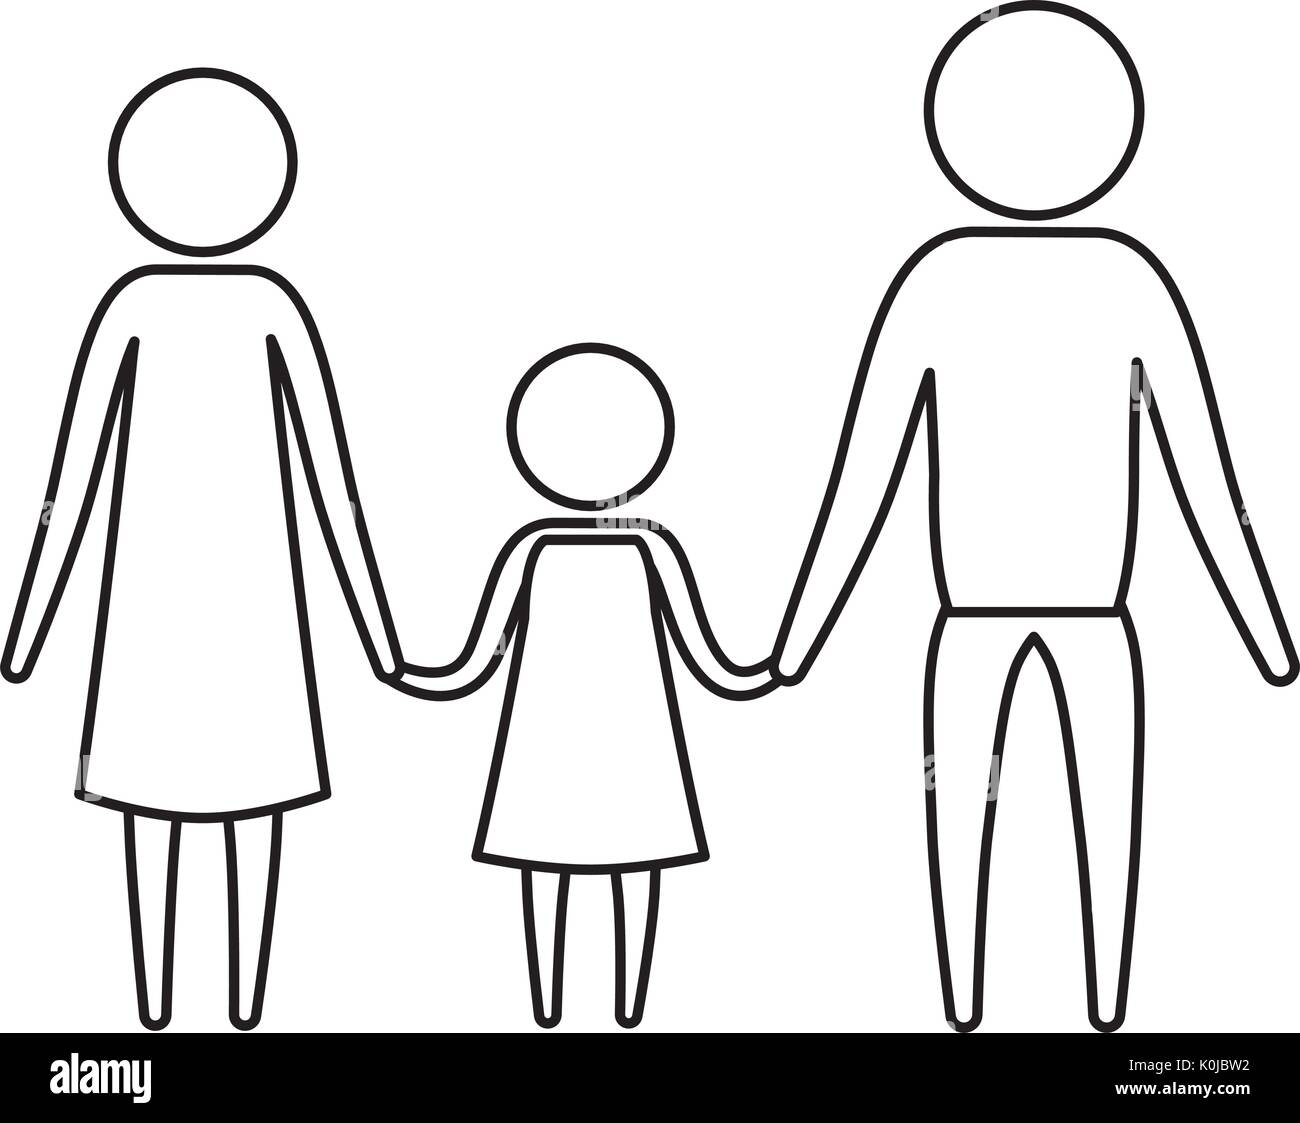 sketch silhouette of pictogram parents with a girl holding hands - Stock Image